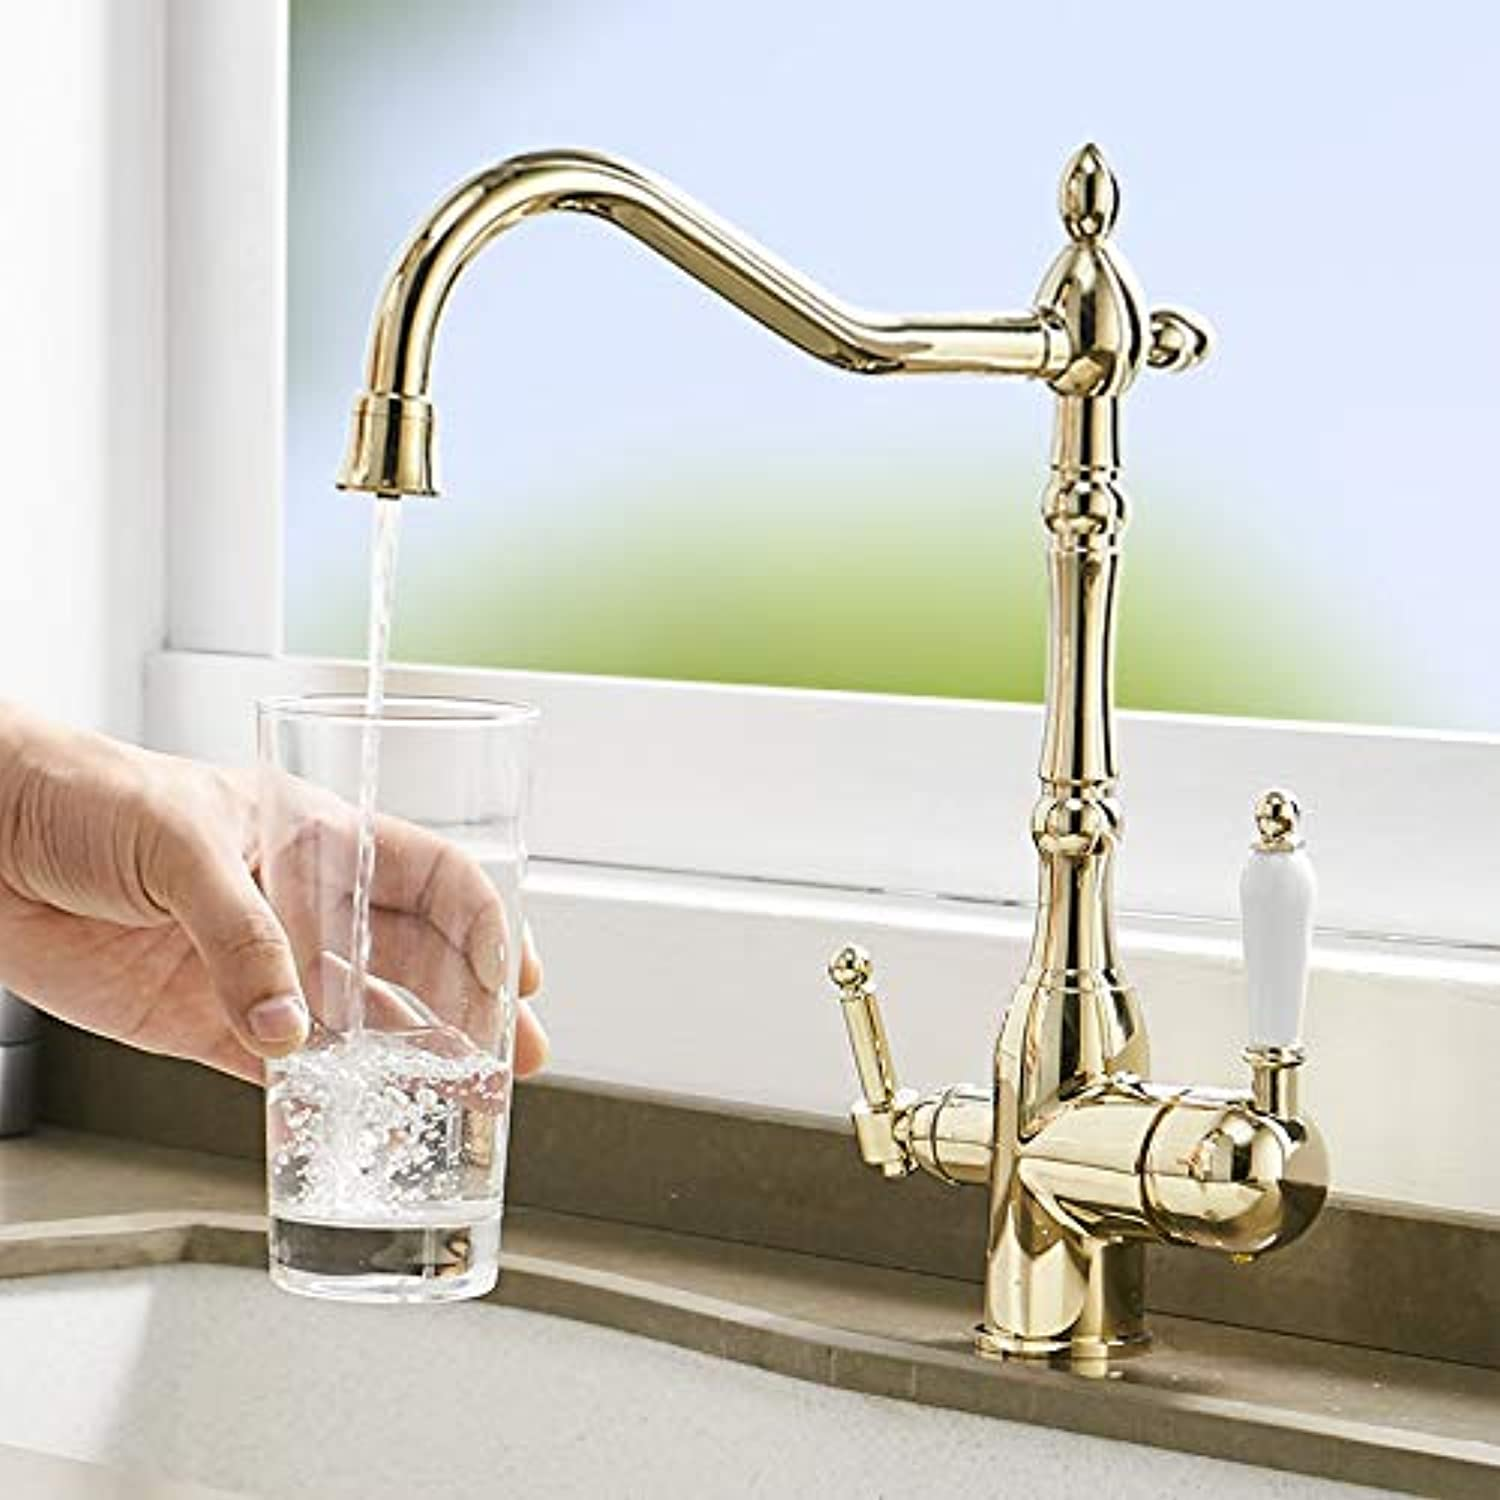 gold Copper Kitchen Faucet hot and Cold Water redating Faucet